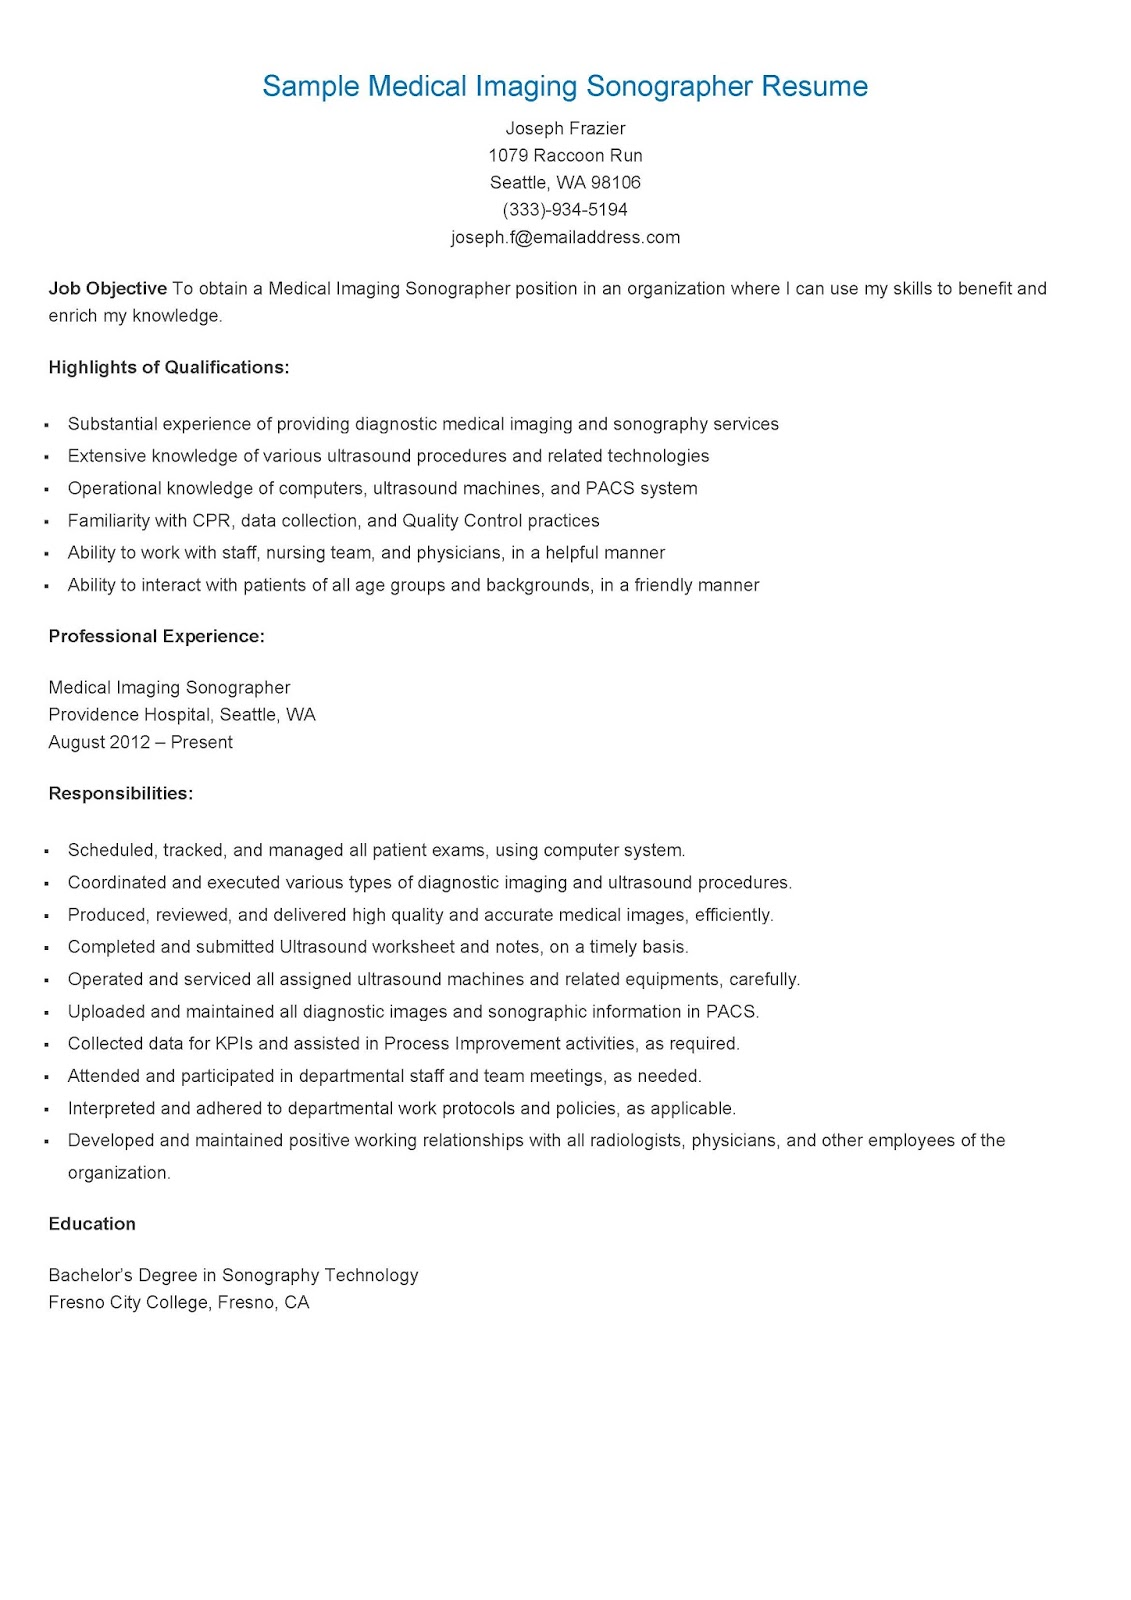 Resume Samples Sample Medical Imaging Sonographer Resume